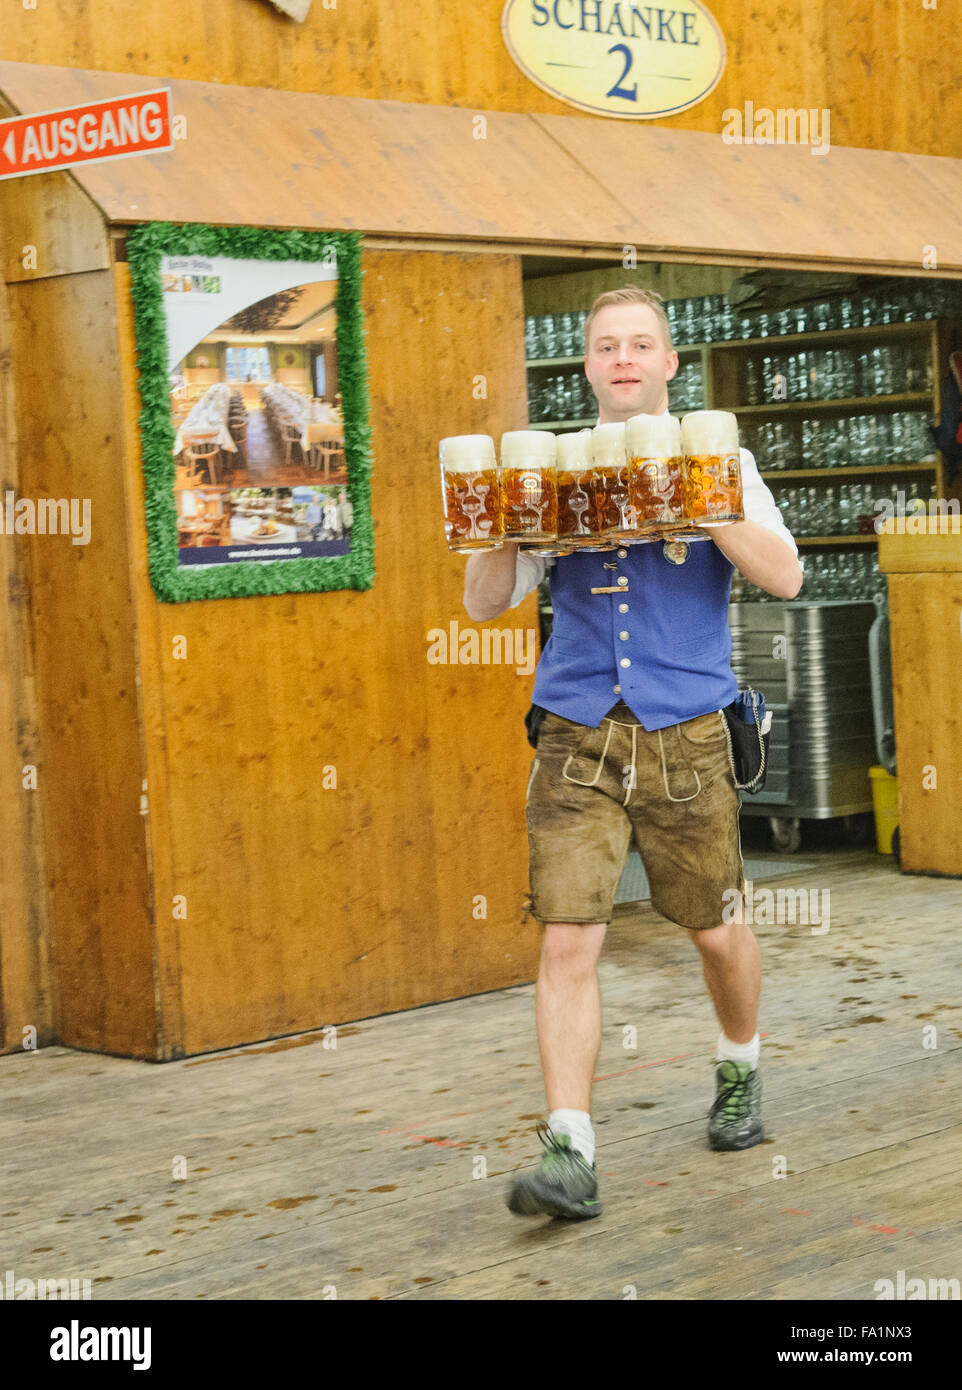 Waiter in a traditional lederhosen carrying giant glasses of beers in Oktoberfest in Munich, Germany - Stock Image